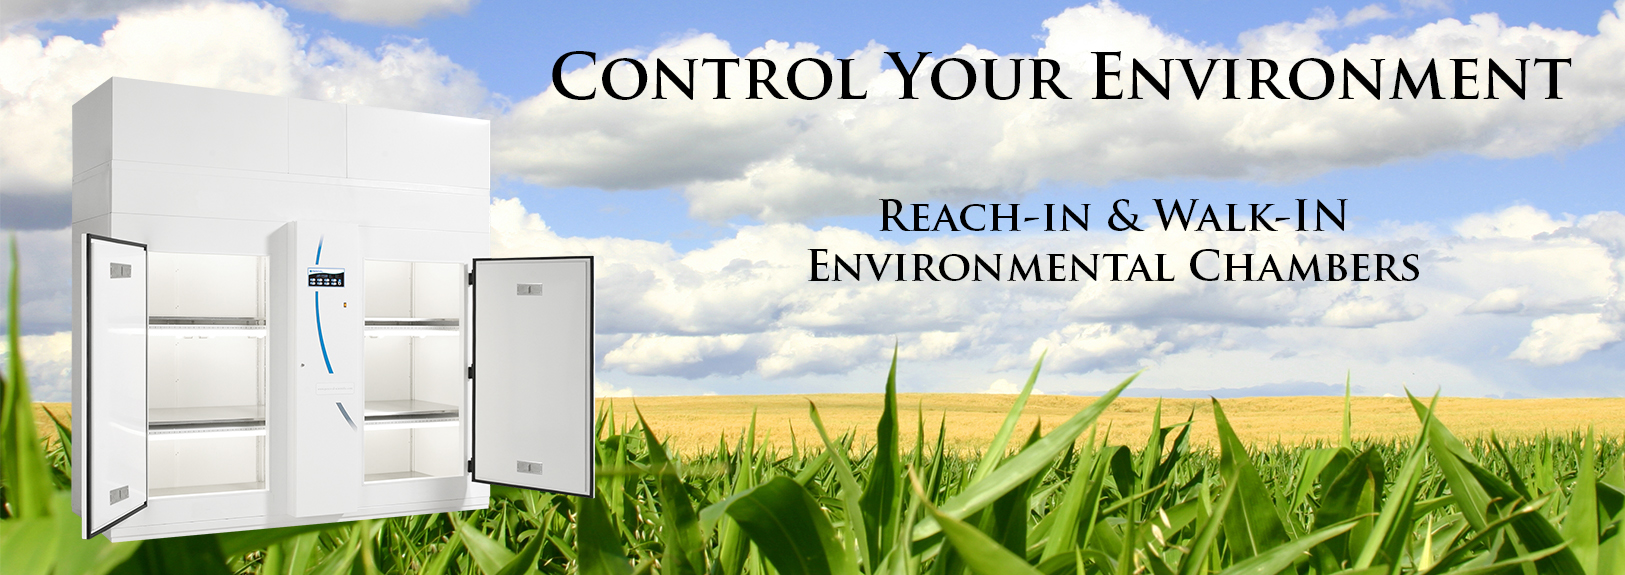 Control Your Environment